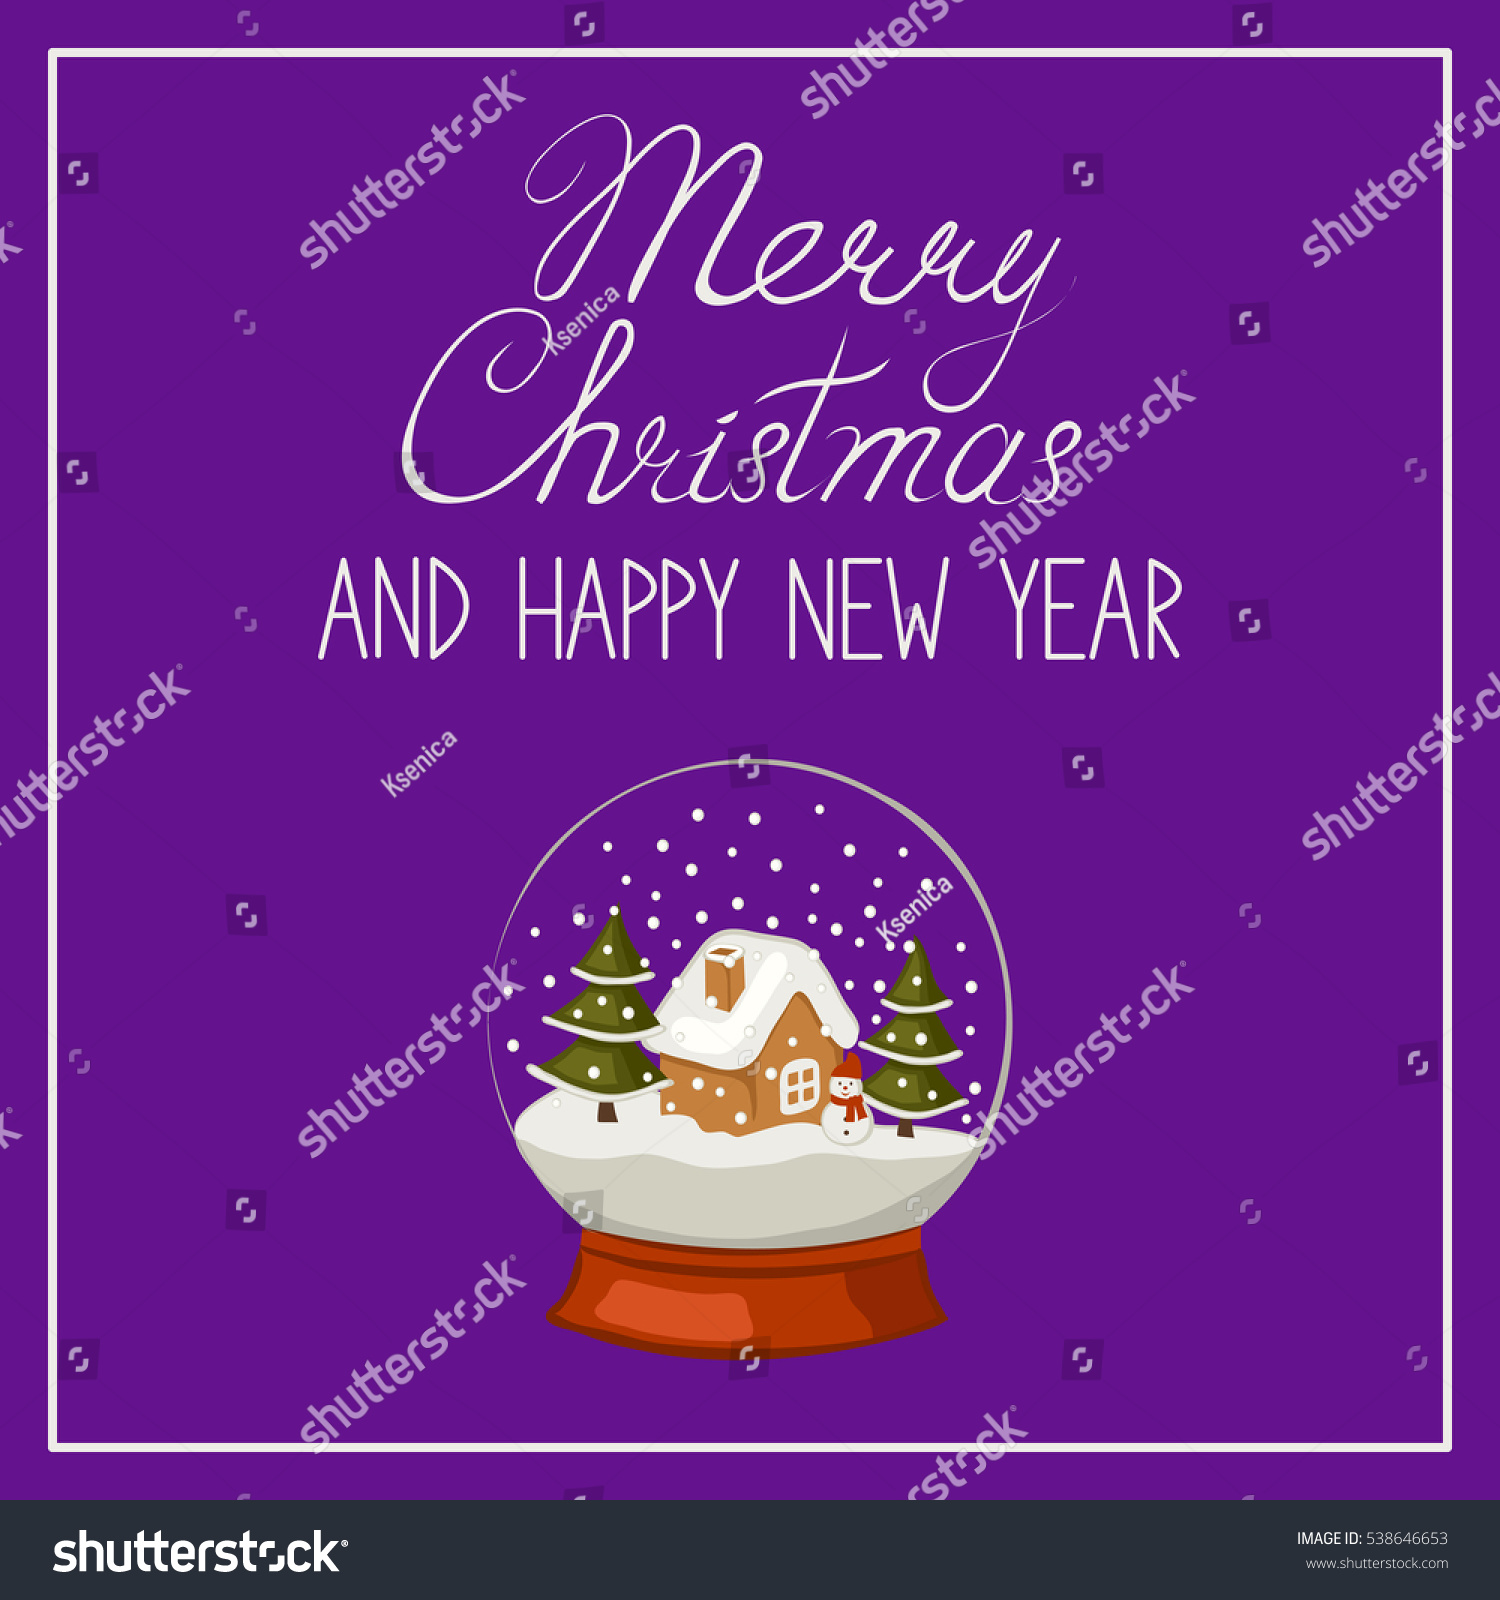 Merry Christmas and happy new year banner greeting card Calligraphic text and a snow globe Vector illustration